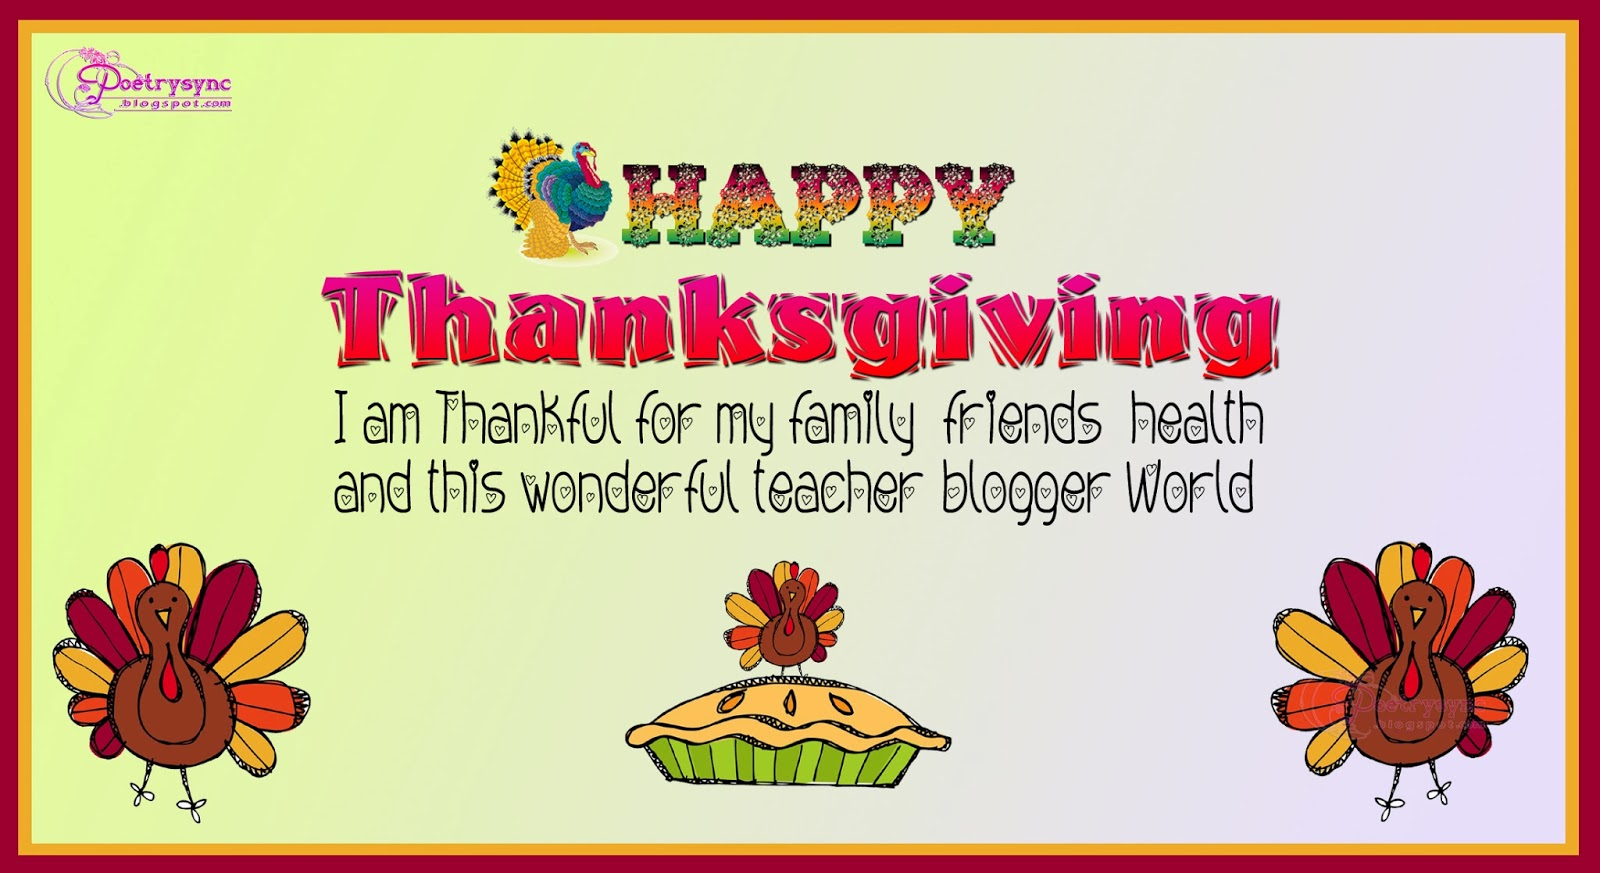 2016 happy thanksgiving day images cards message wishes sms happy2bthanksgiving2bcards2bfor2bteachers2b2016 2bthank2byou m4hsunfo